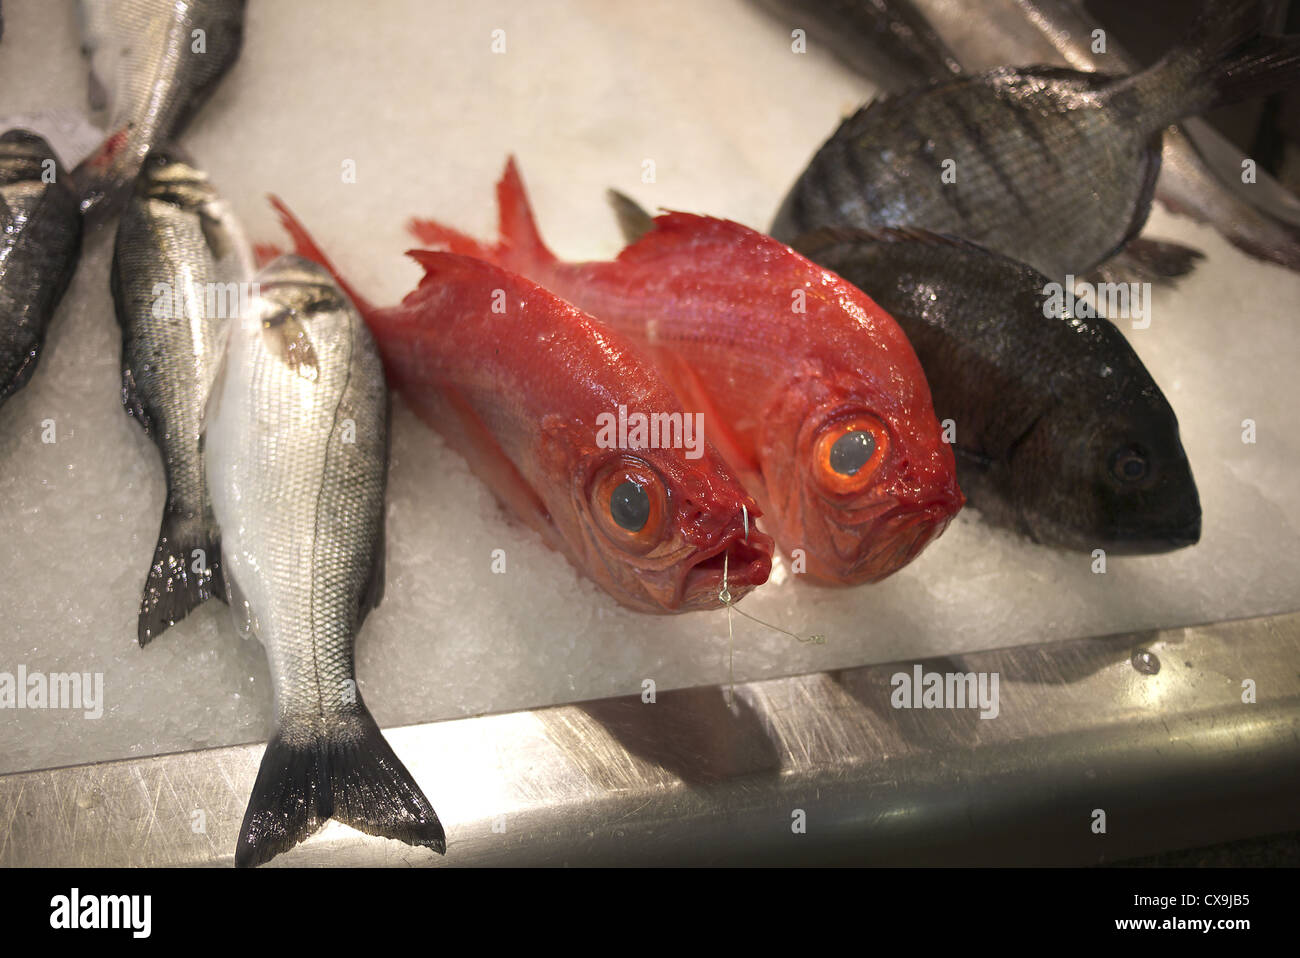 Fish For Sale Stock Photos & Fish For Sale Stock Images - Alamy